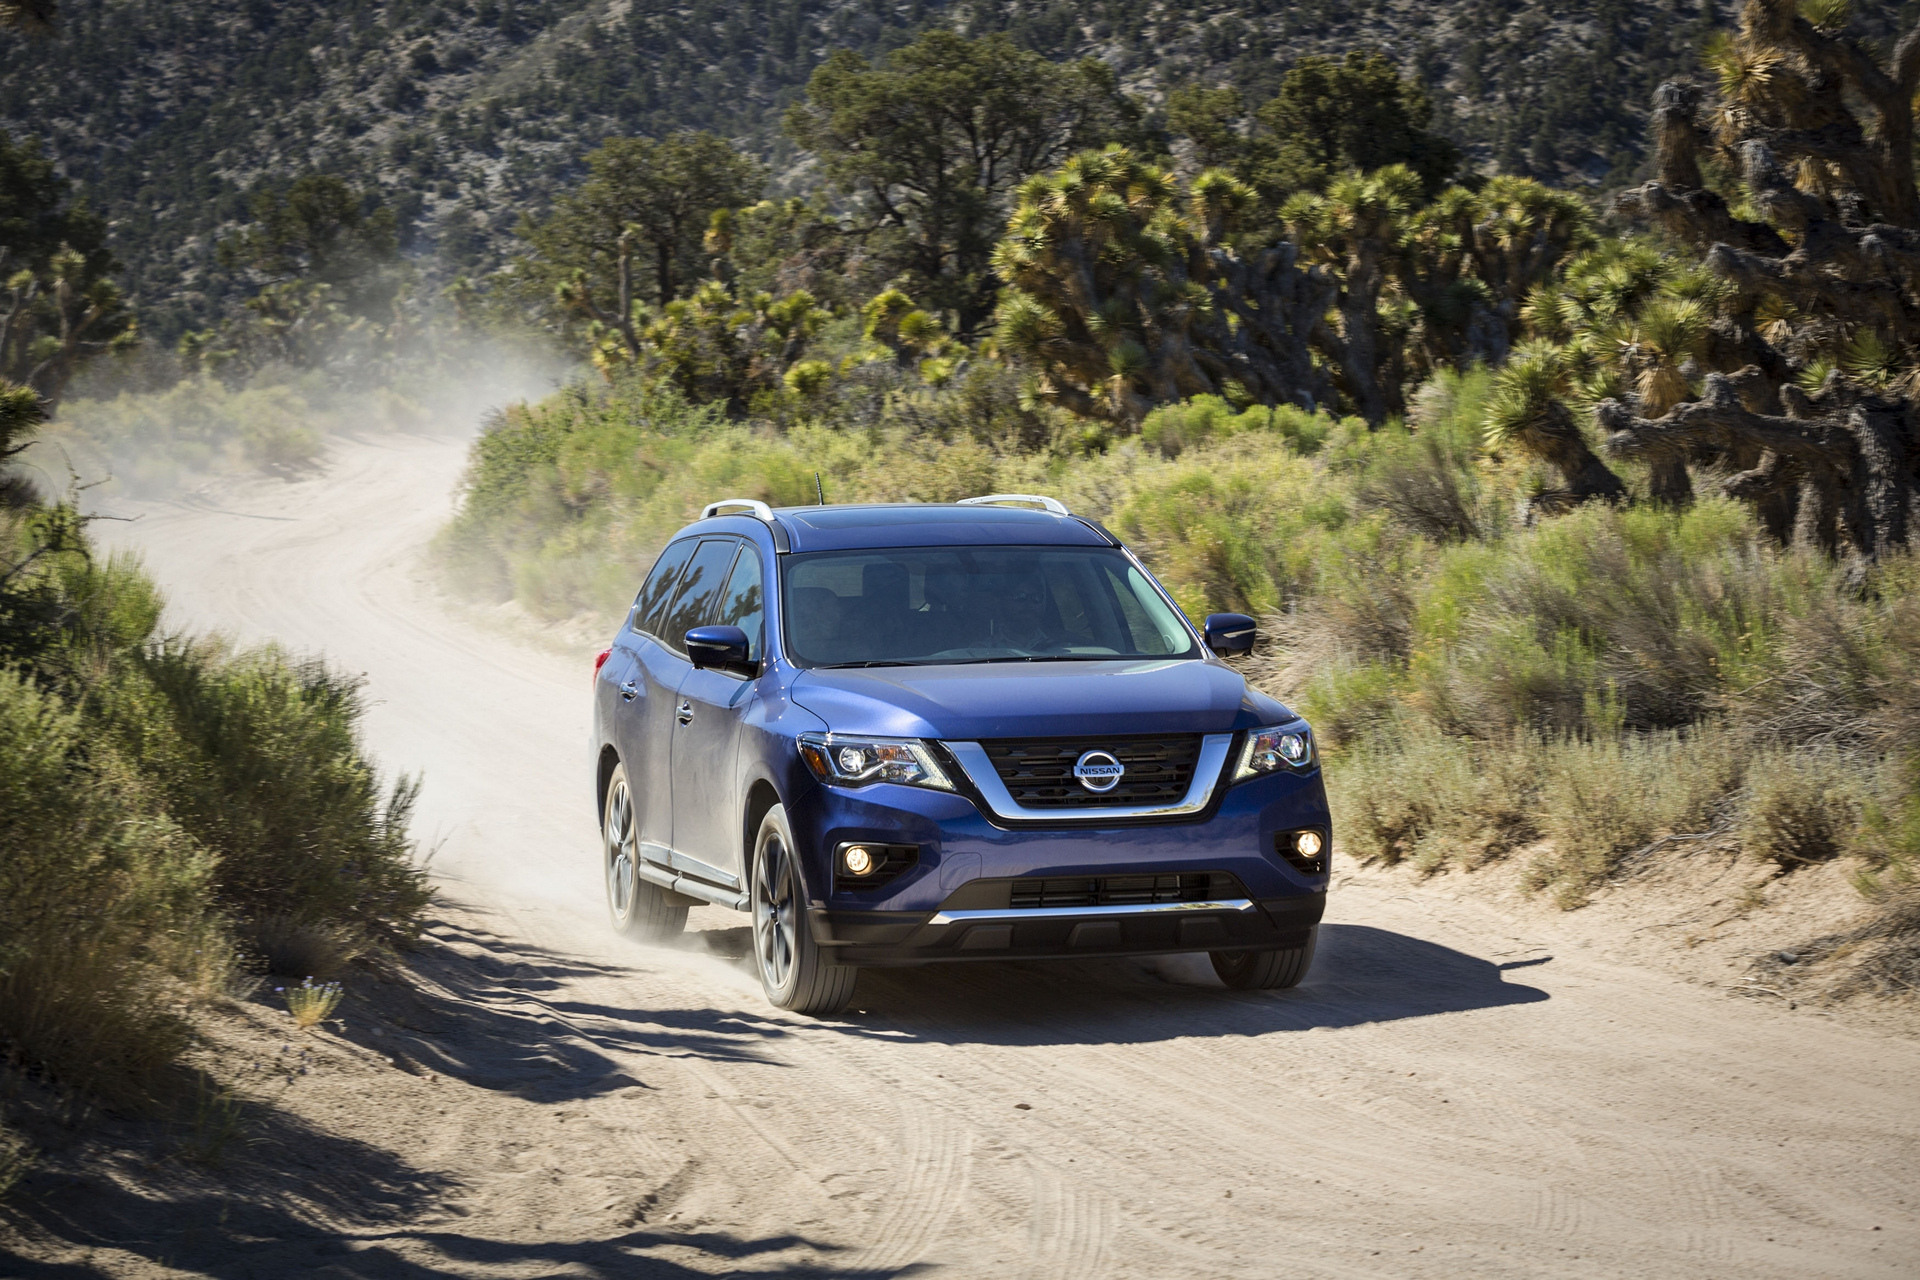 2017 Nissan Pathfinder © Nissan Motor Co., Ltd.